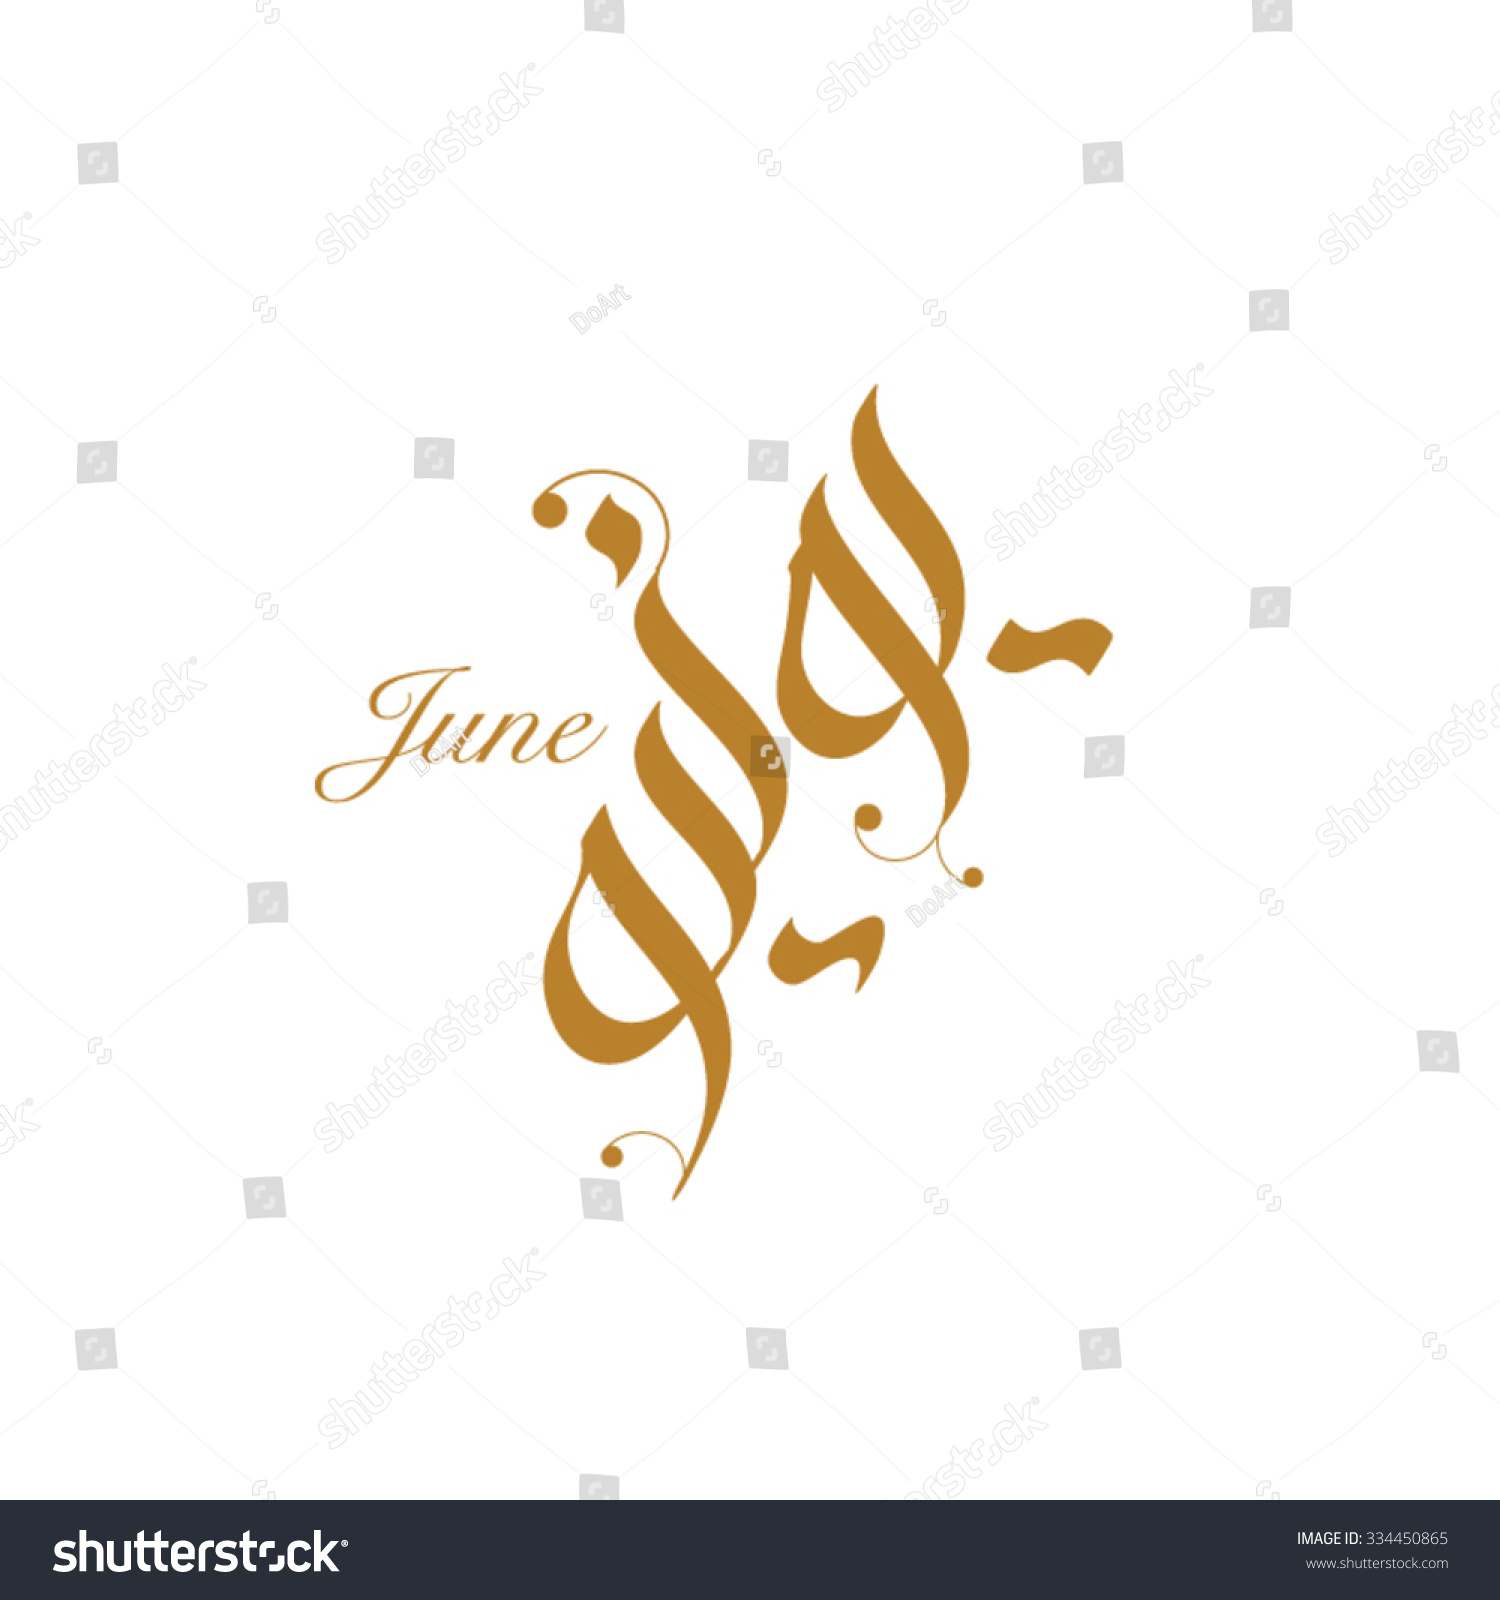 June in arabic calligraphy style it is a vector type file